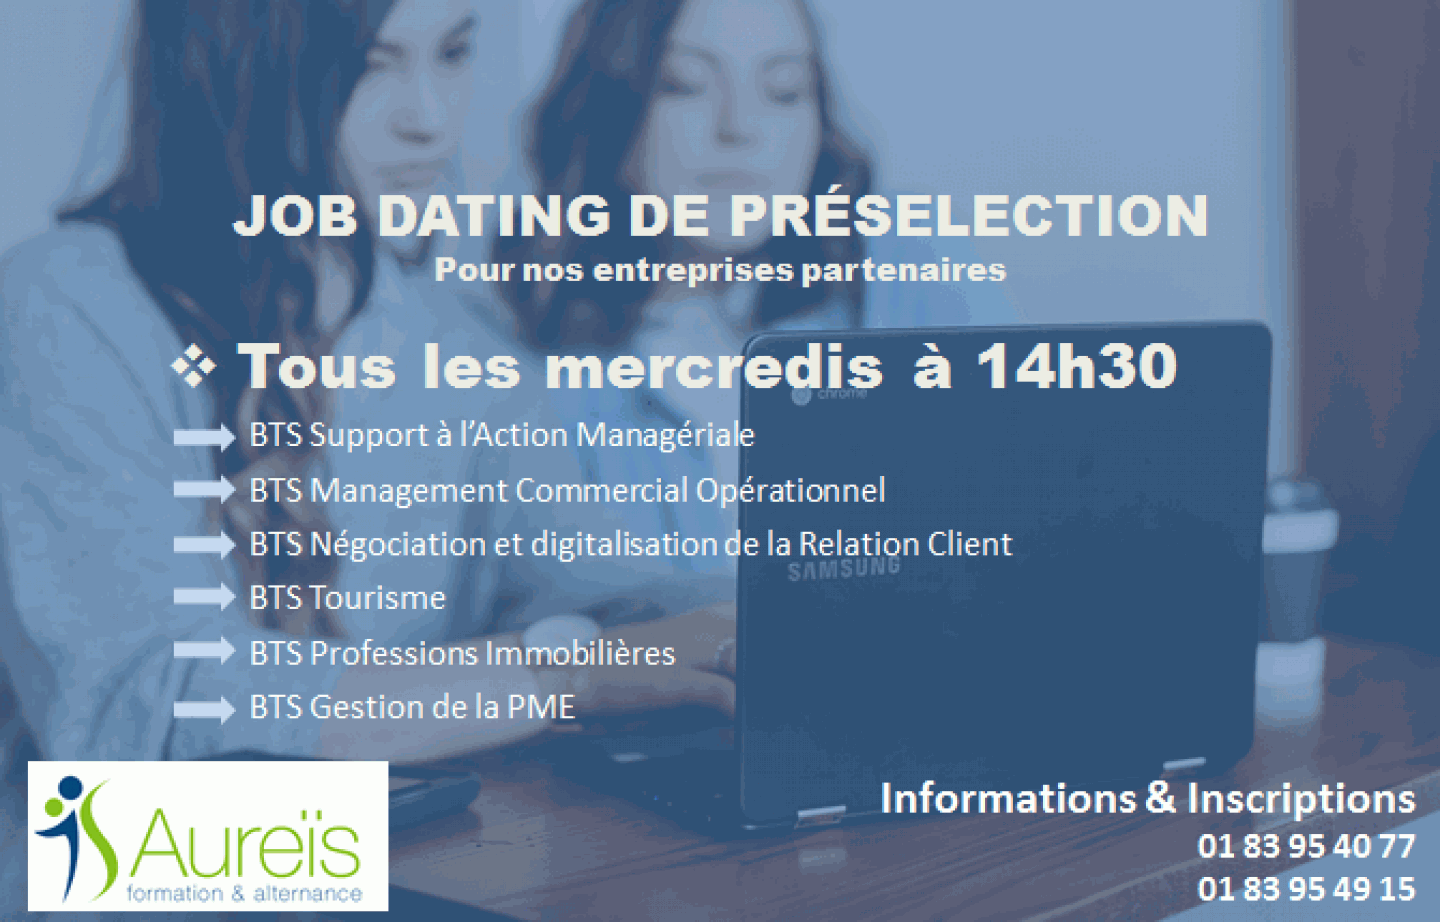 JOB DATING PRESELECTION